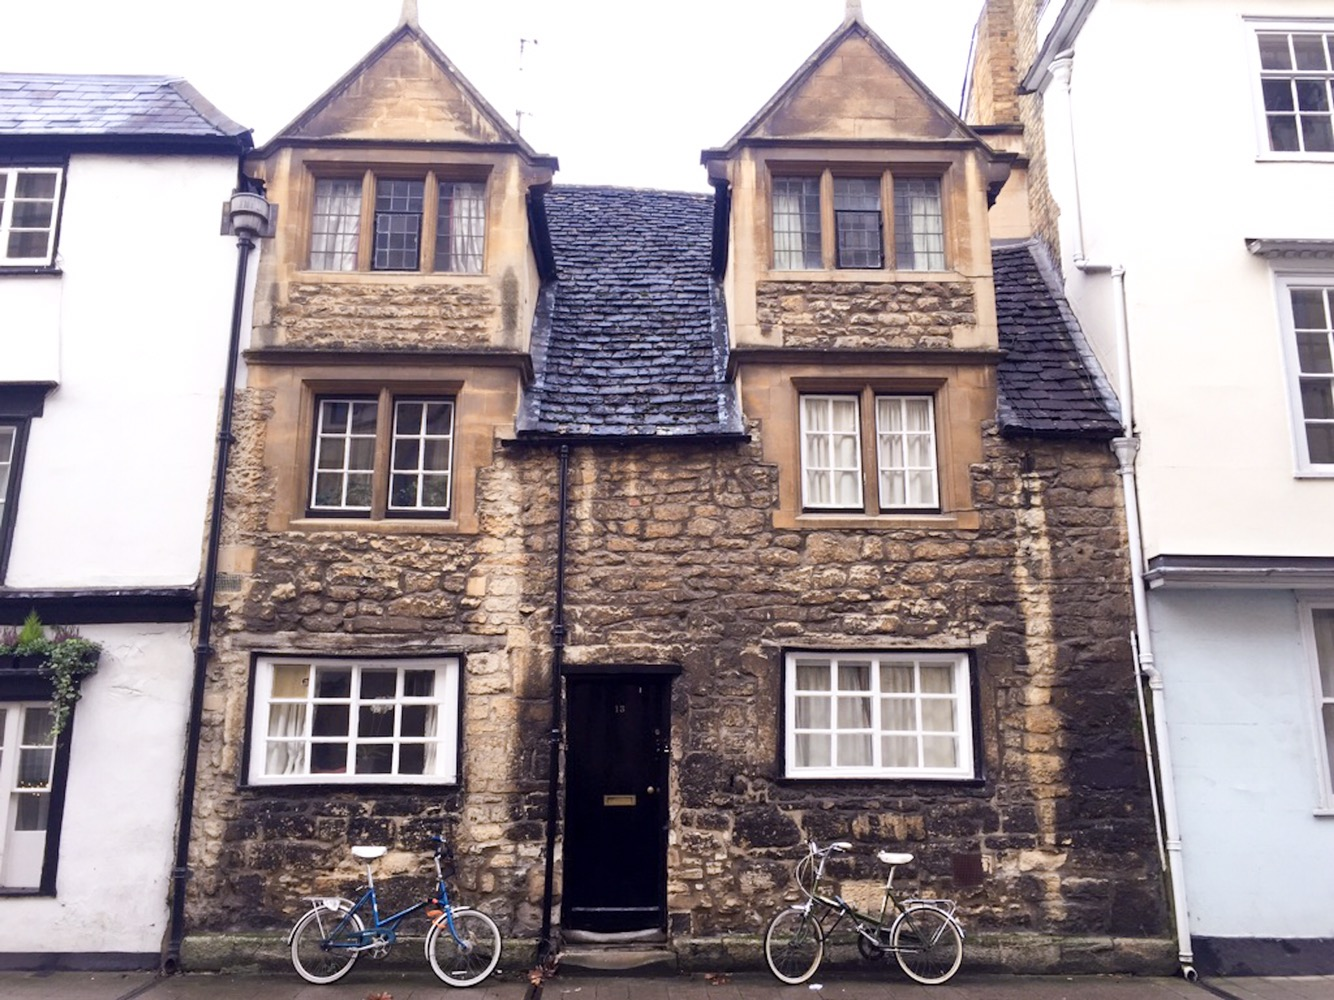 Bikes in front of an old stone house, Oxford